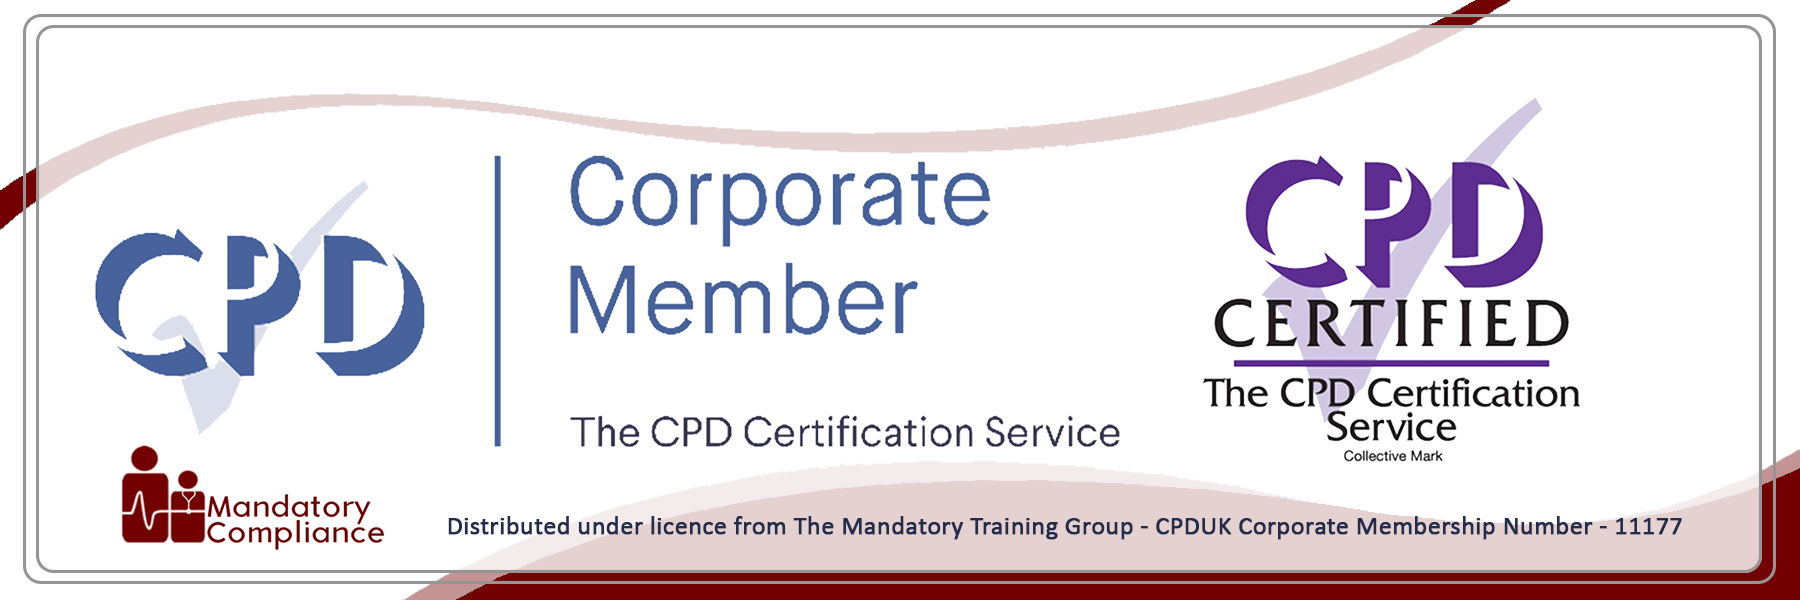 Prevention and Control of Infection -Online Training Course - The Mandatory Training Group UK -